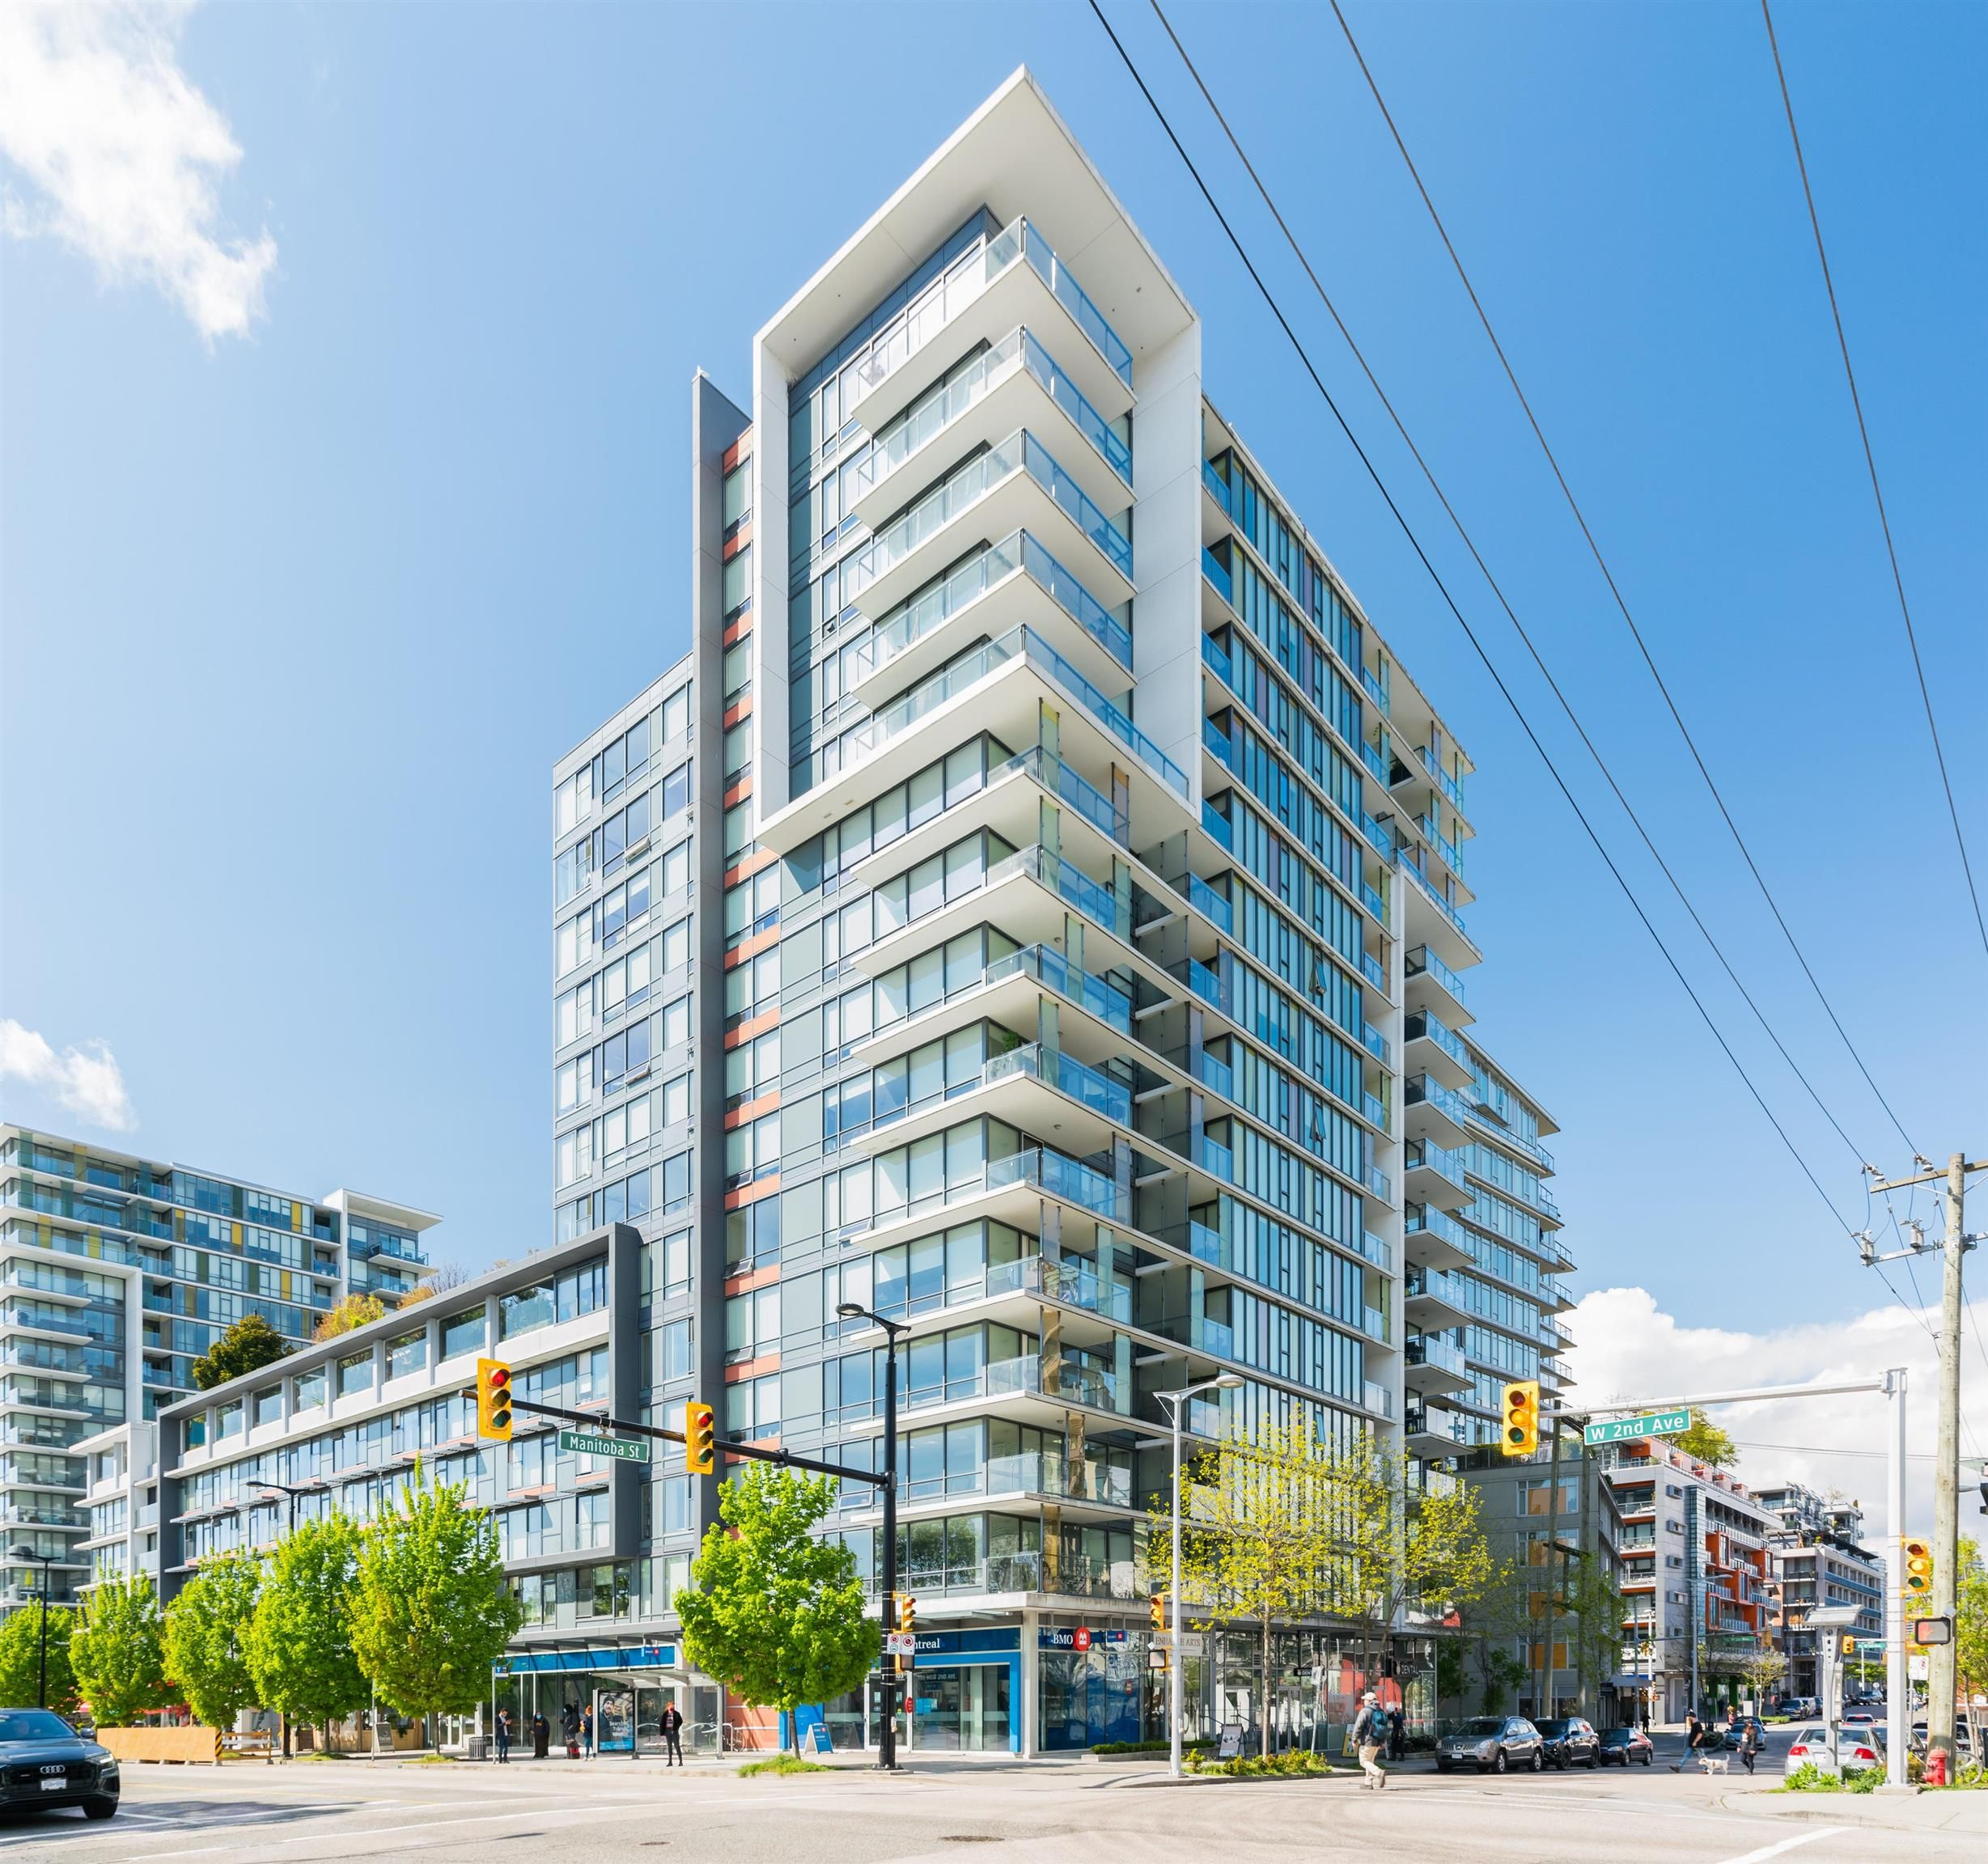 """Main Photo: 909 1783 MANITOBA Street in Vancouver: False Creek Condo for sale in """"RESIDENCES AT WEST"""" (Vancouver West)  : MLS®# R2625180"""